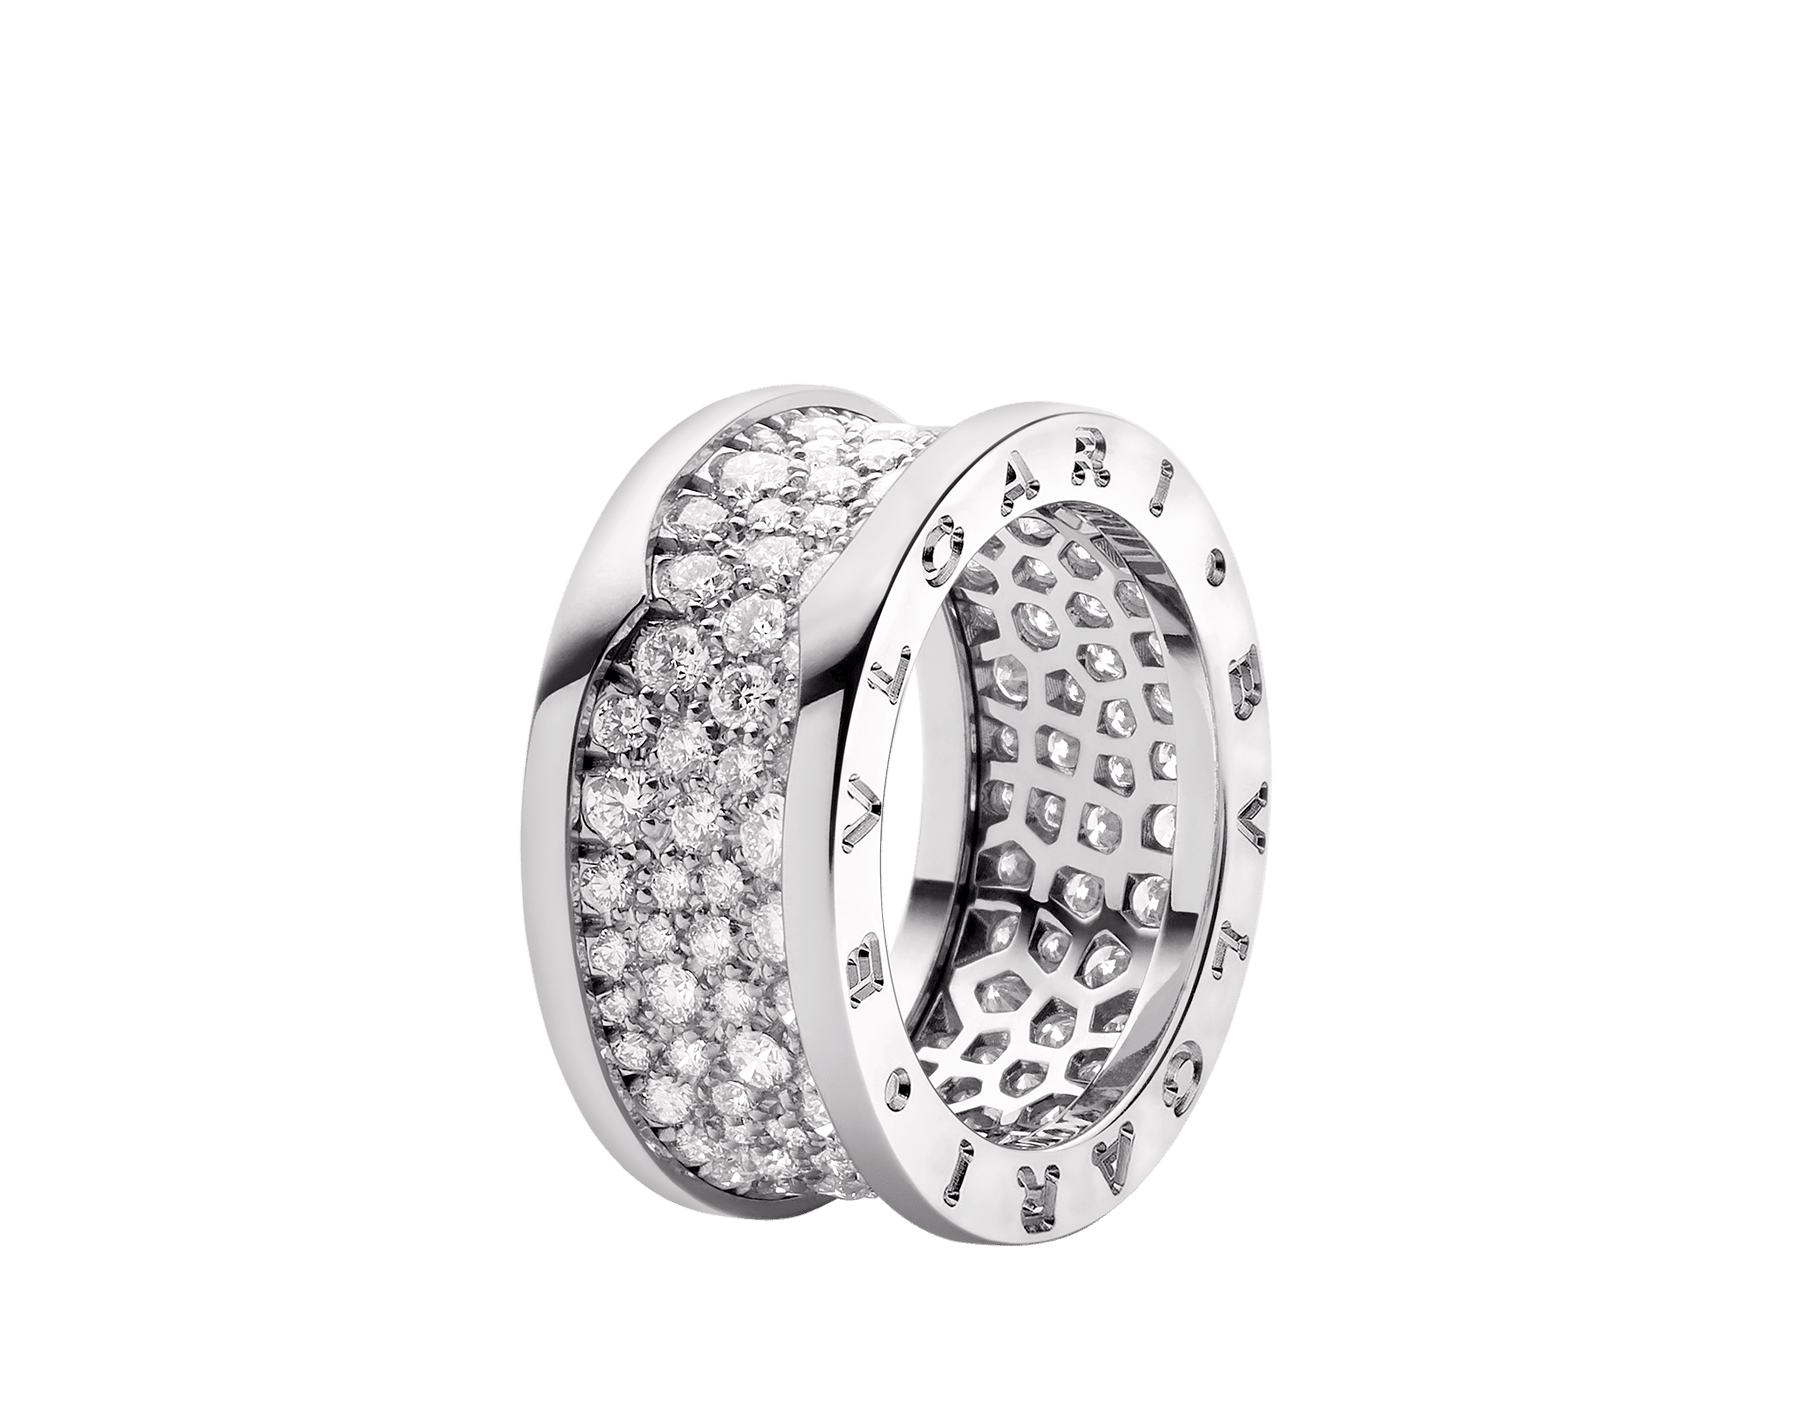 B.zero1 ring in 18 kt white gold, set with pavé diamonds on the spiral. AN855552 image 1